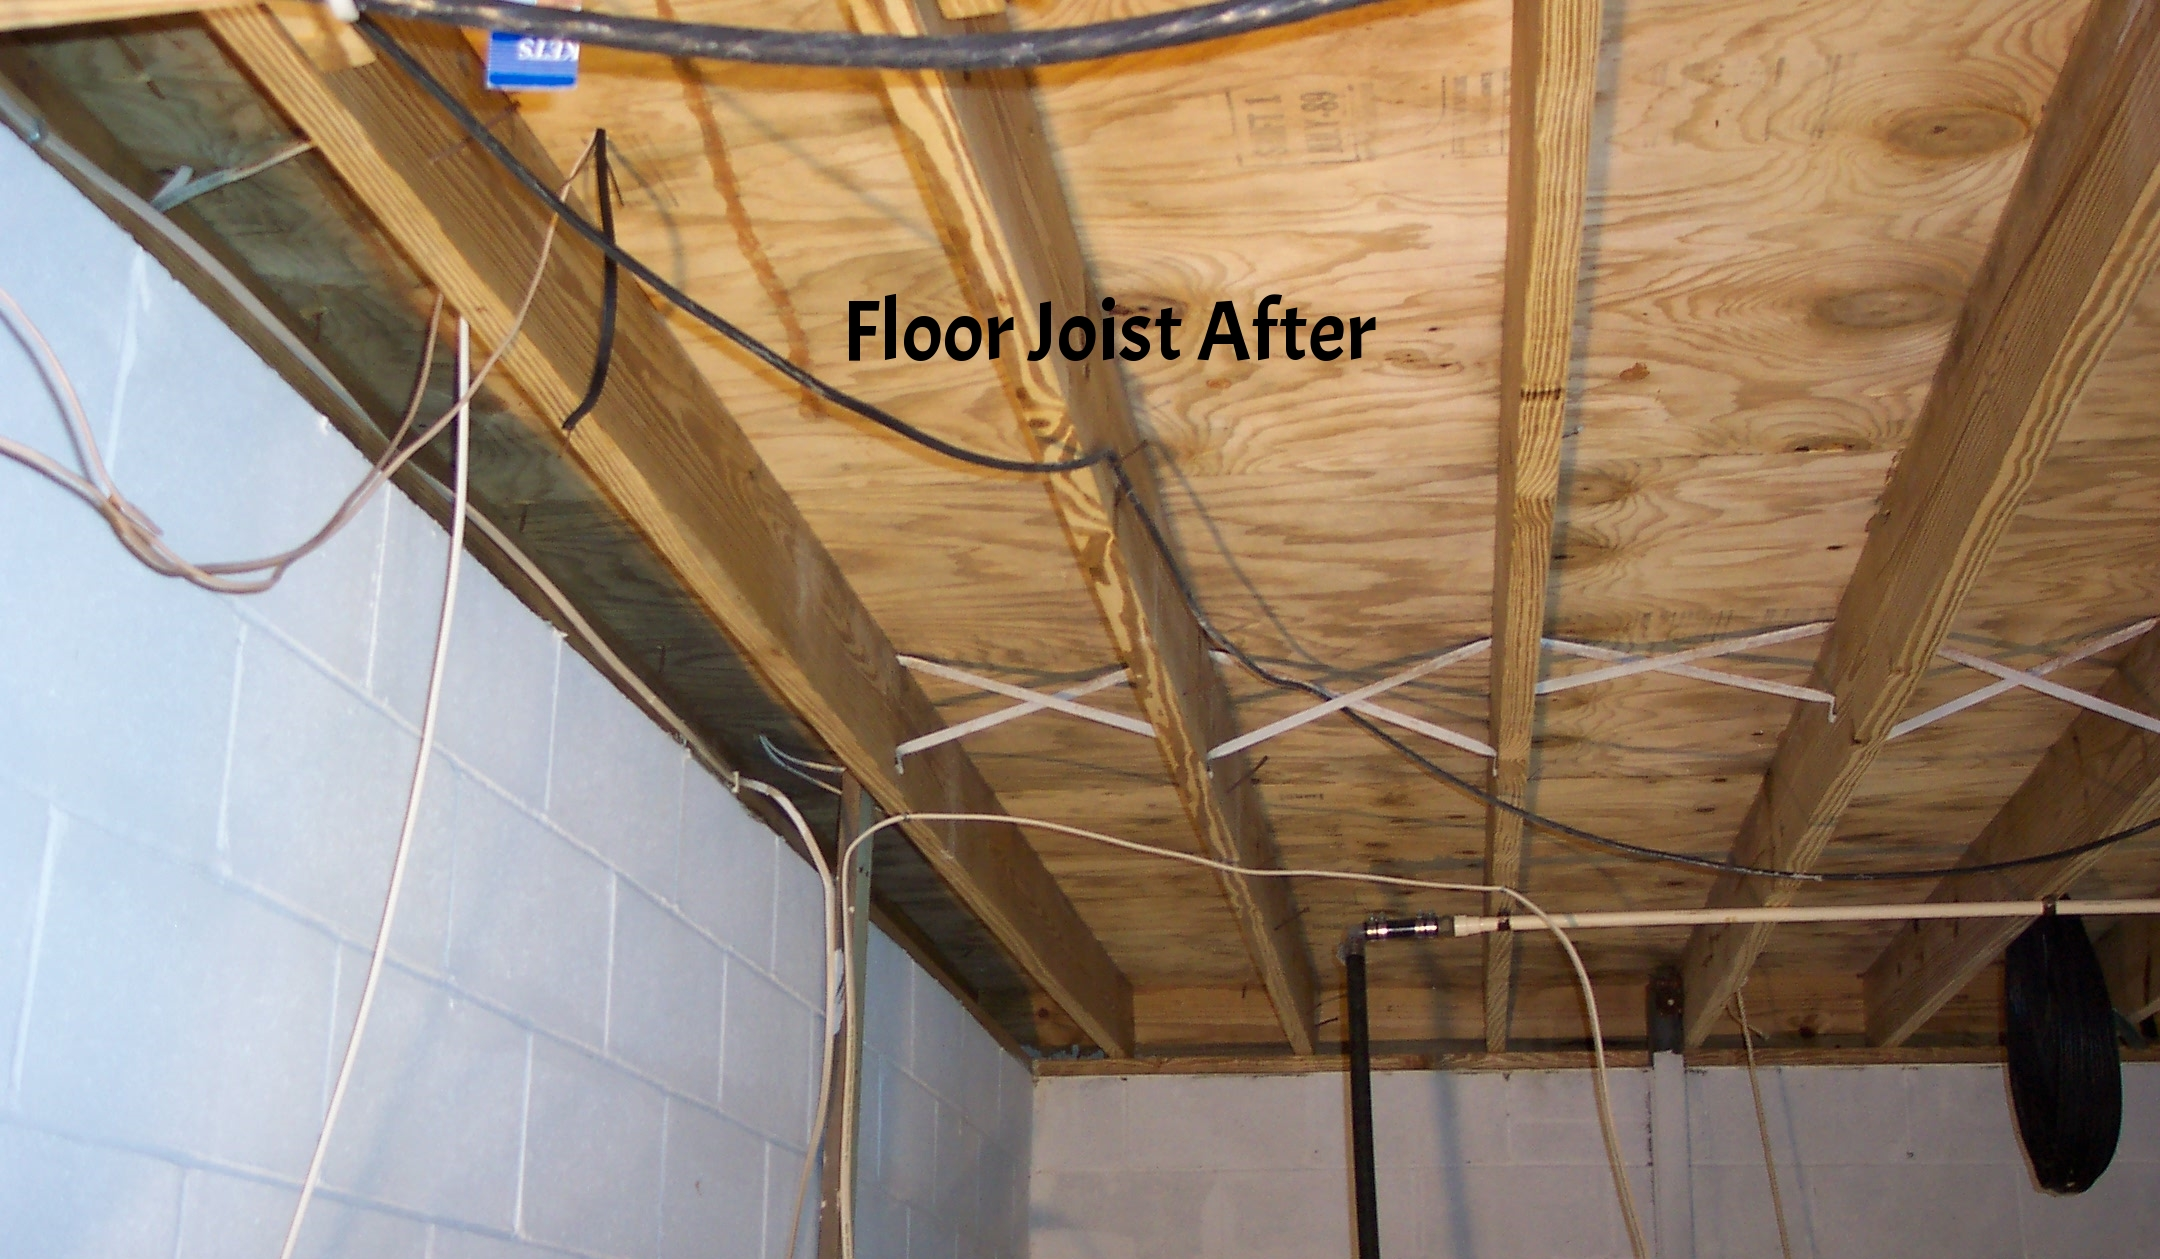 Basement Mold Removal After